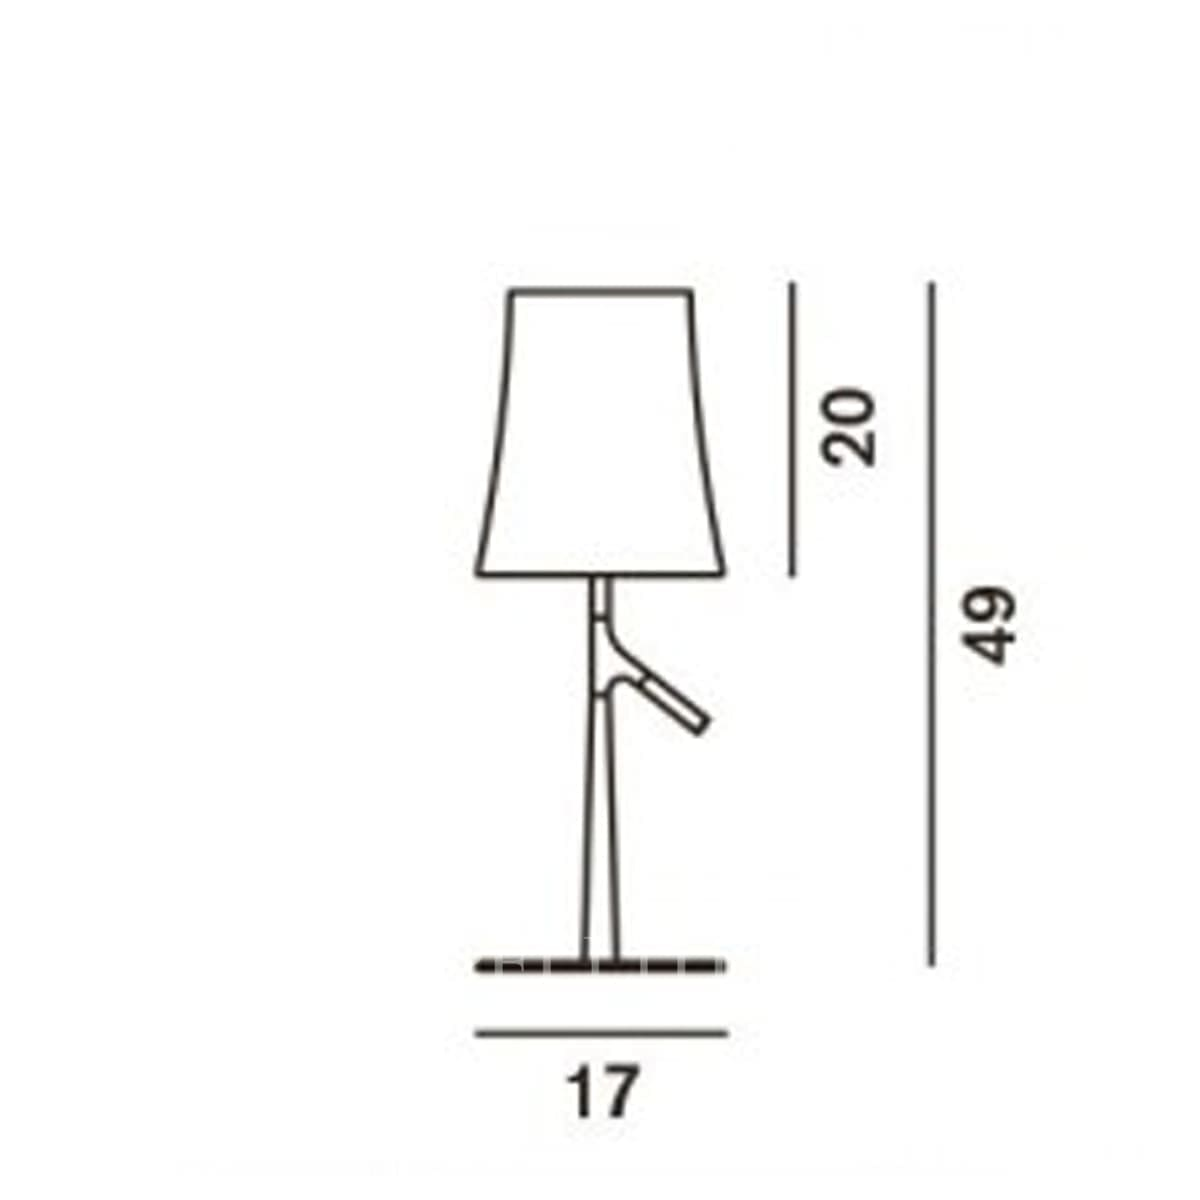 foscarini italian lighting designer table lamp birdie small measures